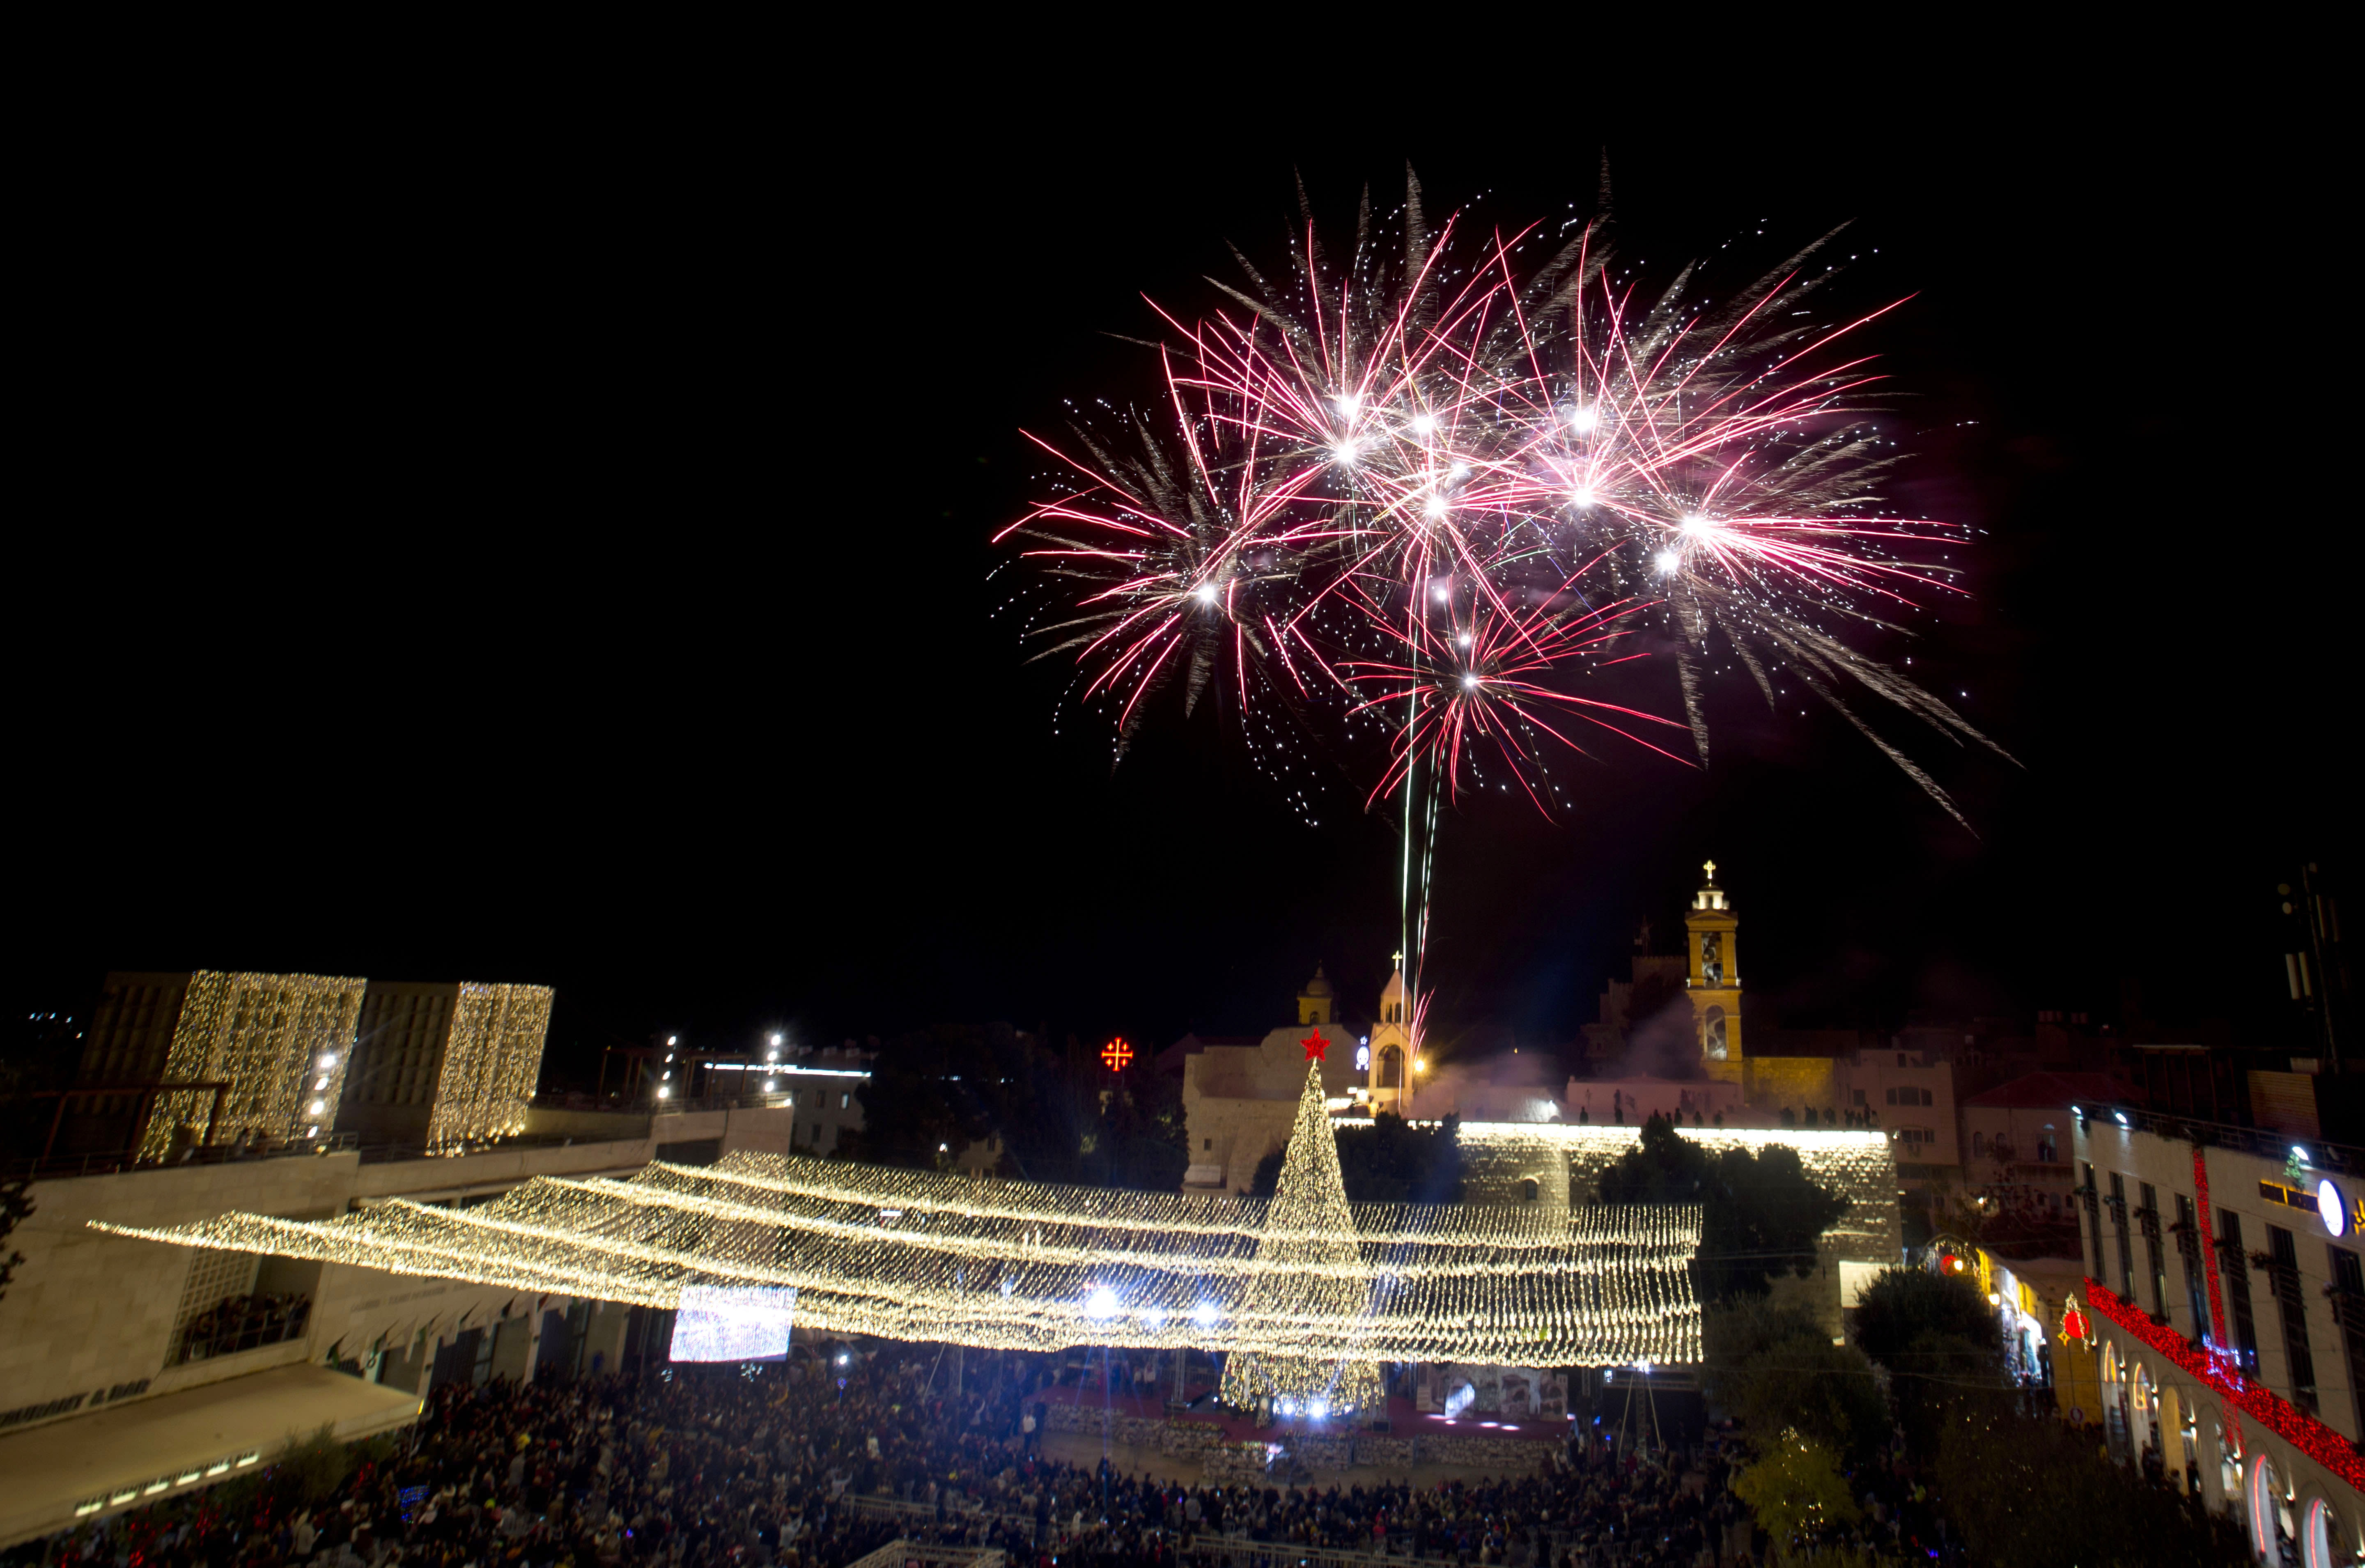 Palestinian Christians celebrate the lighting of a Christmas tree outside the Church of the Nativity, traditionally believed by Christians to be the birthplace of Jesus Christ in the West Bank city of Bethlehem, Saturday, Nov. 30, 2019. (AP Photo/Majdi Mohammed)